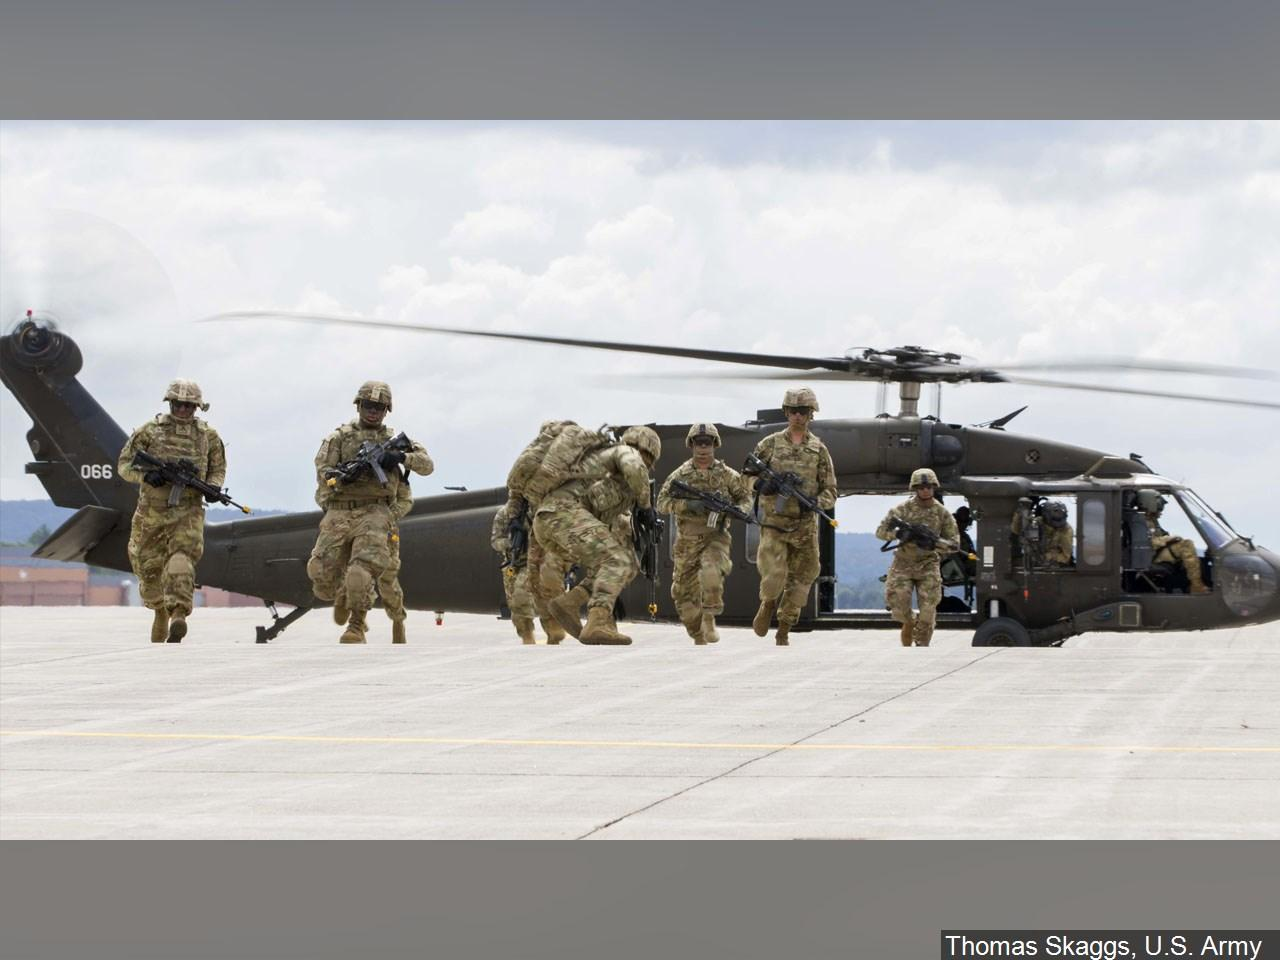 A U.S. Army Reserve unit based in Logan in northern Utah is deploying to Kuwait. (Photo: MGN)